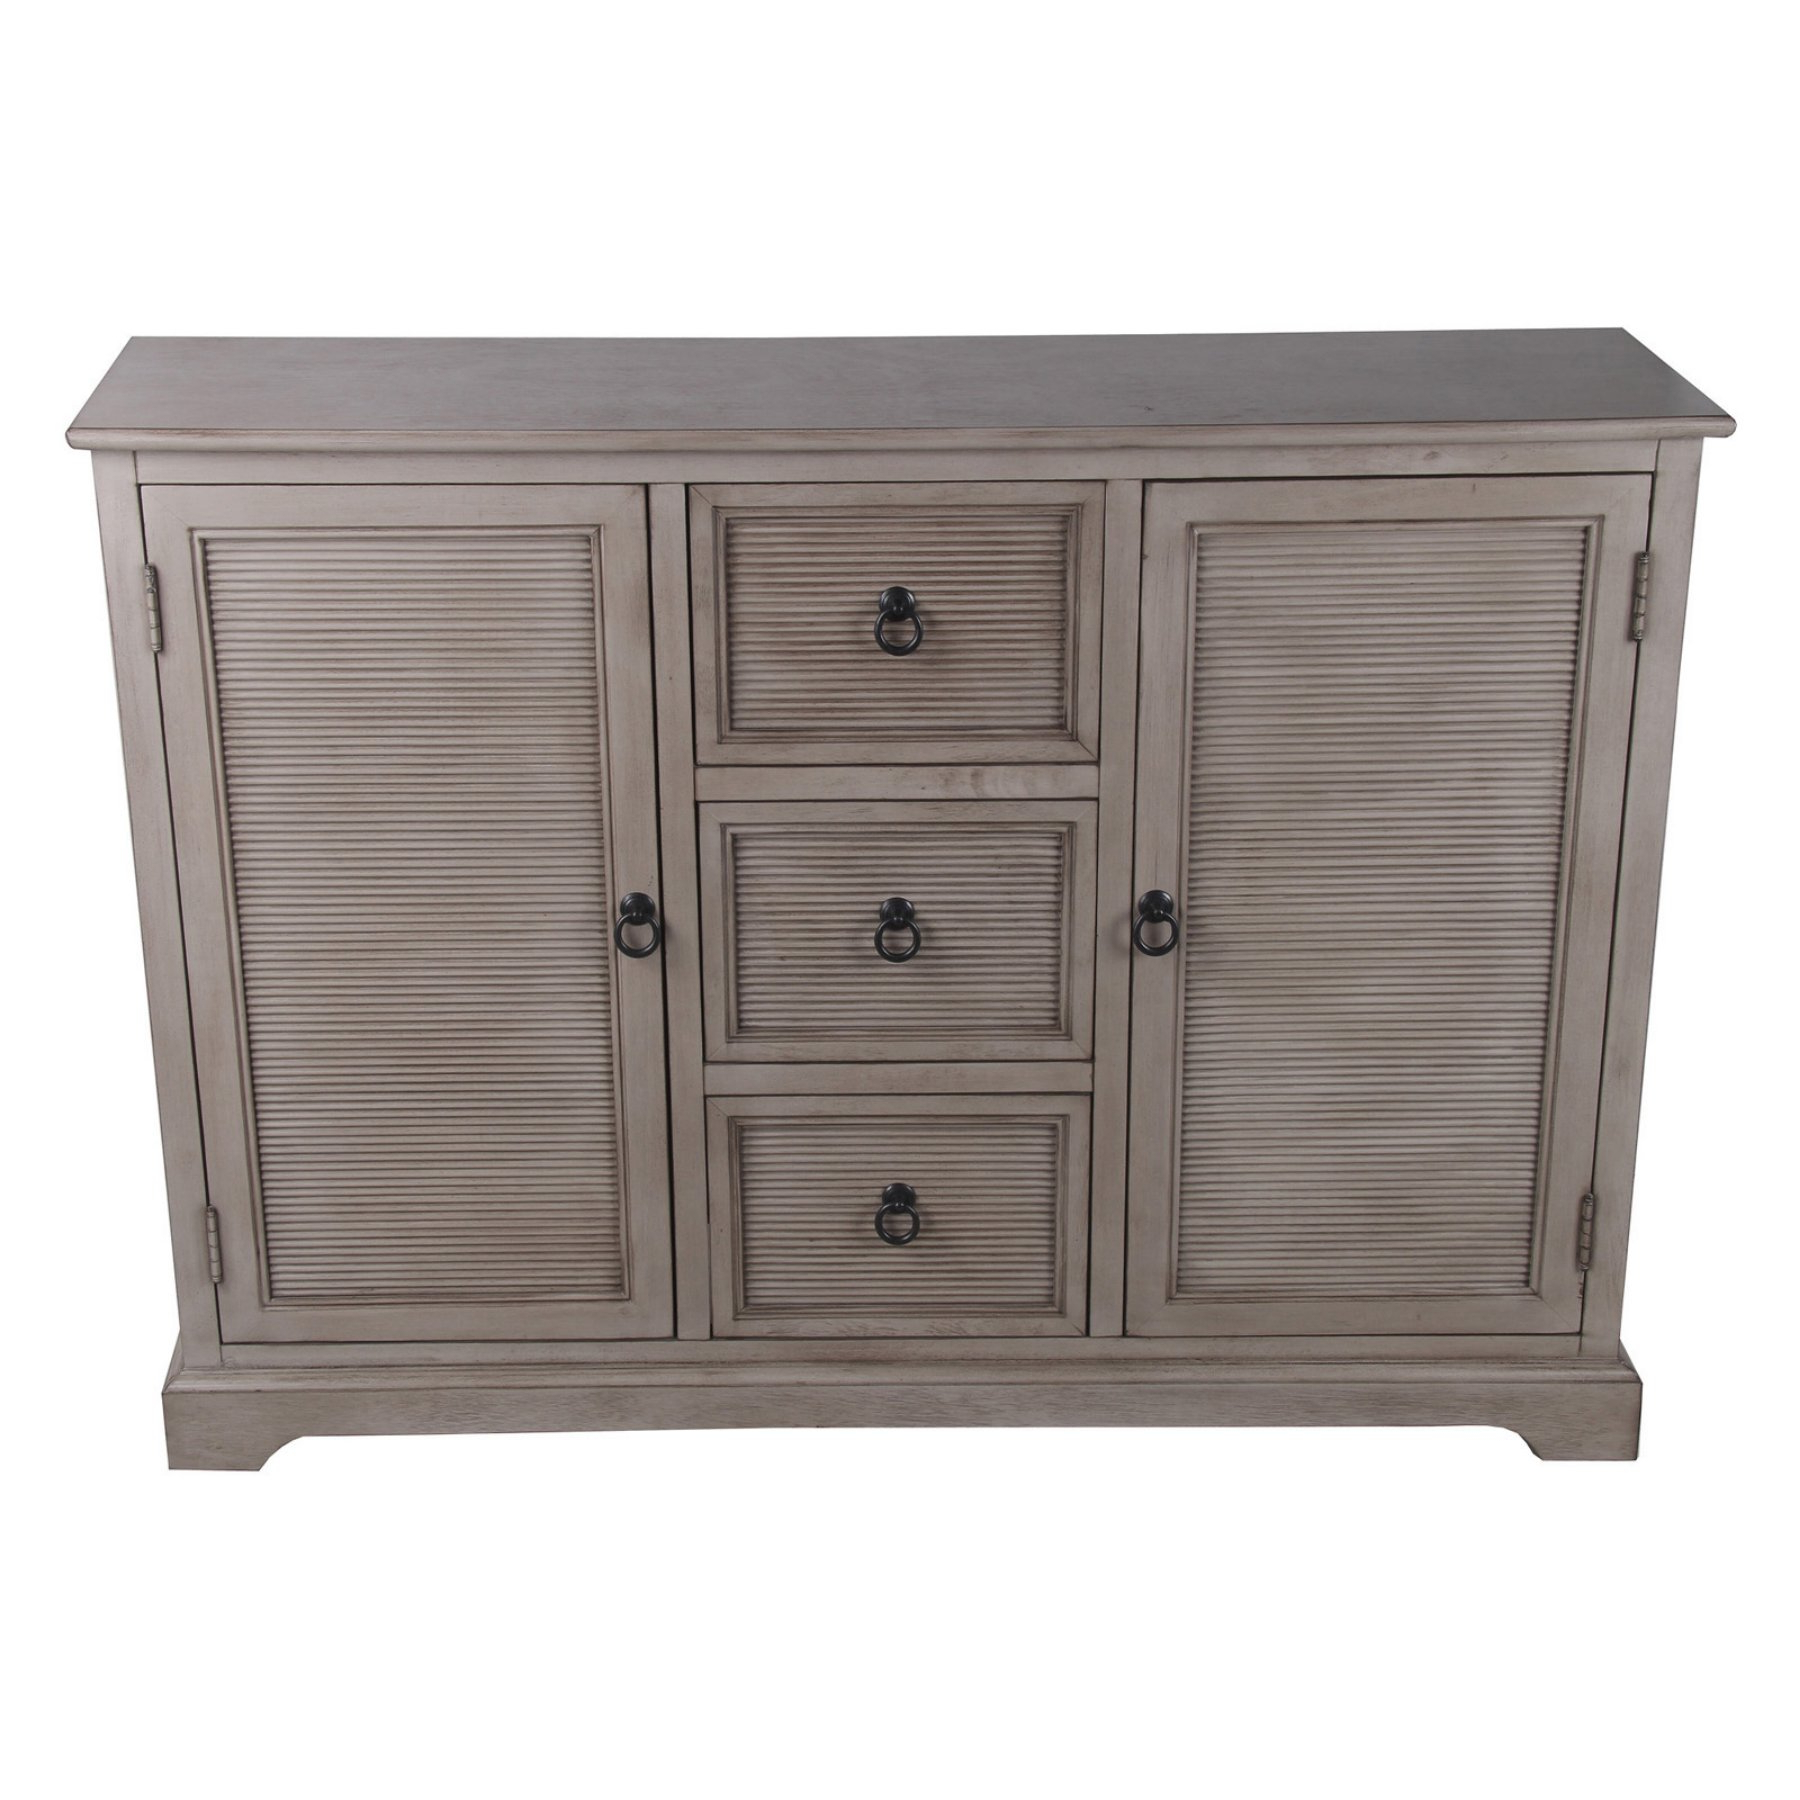 Privilege International Skinny Sideboard | Products Inside Stennis Sideboards (View 11 of 20)